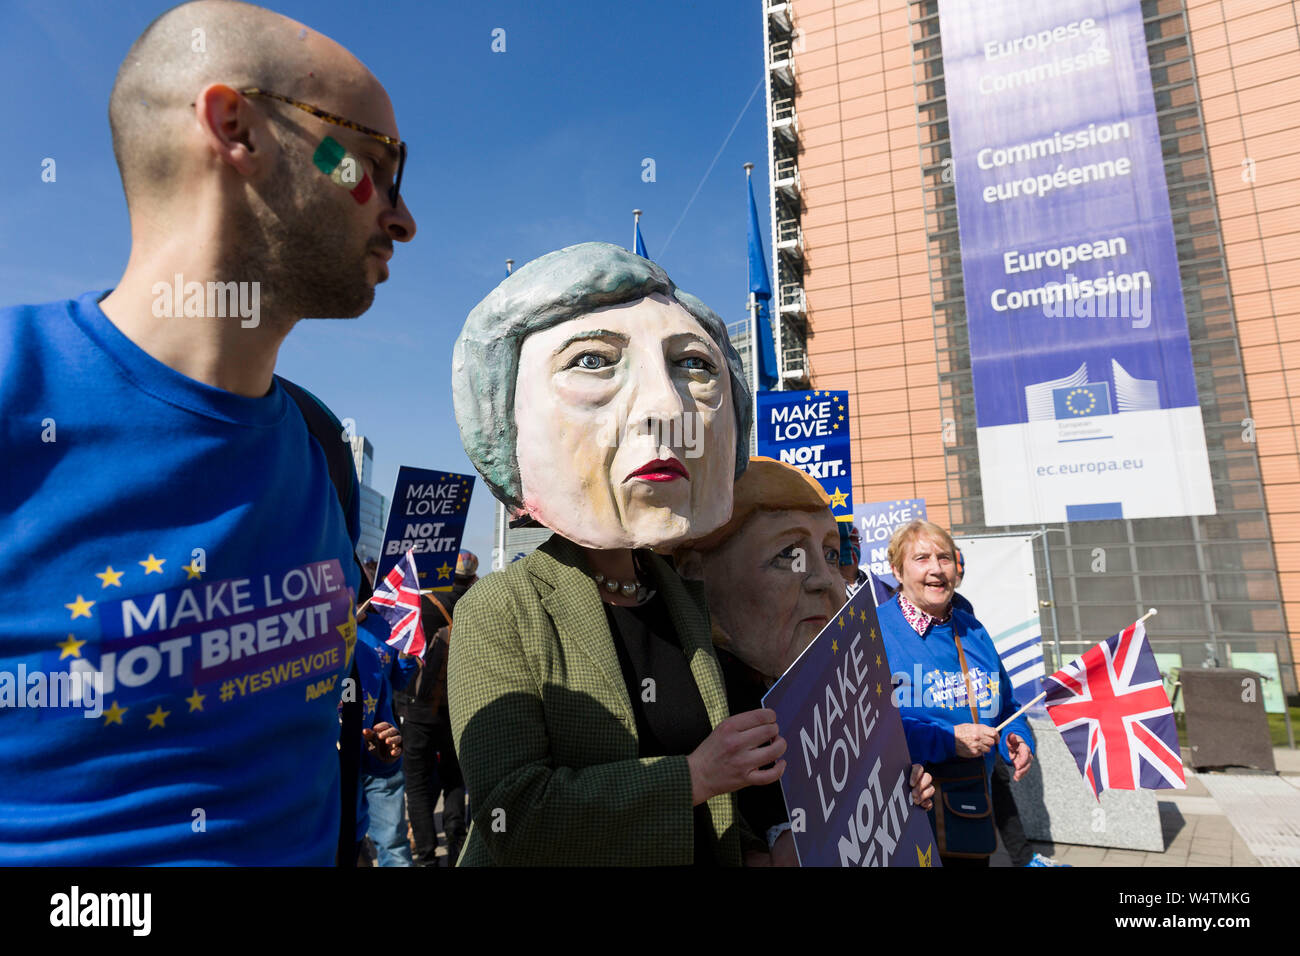 "Belgium, Brussels, on March 21, 2019: demonstration in front of the European Commission against Brexit with the slogan ""Make Love, Not Brexit"". Partic Stock Photo"